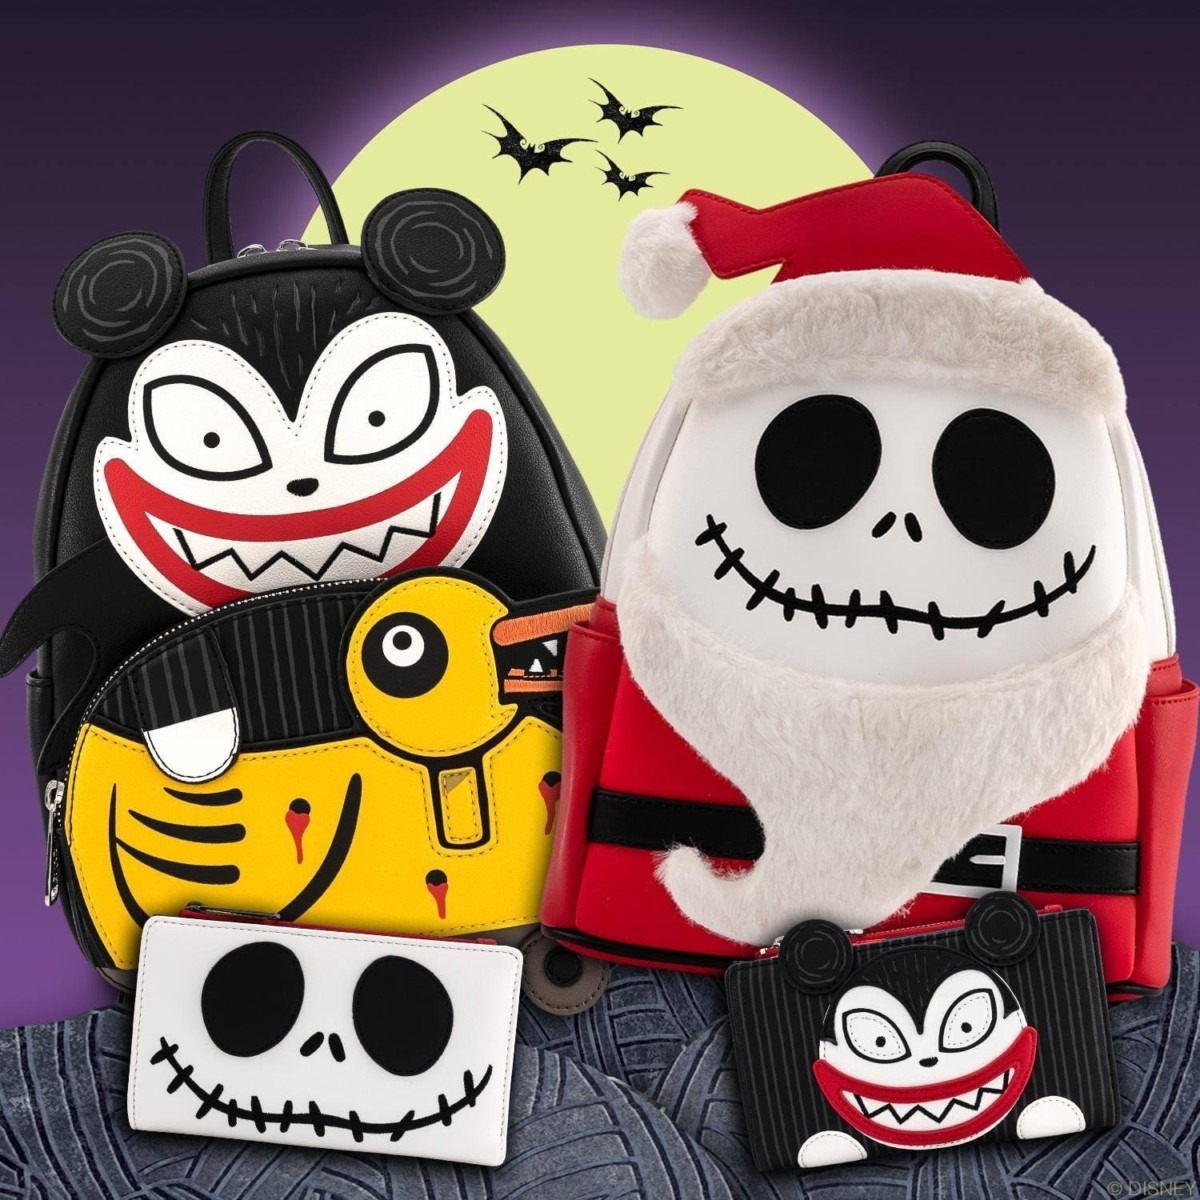 New Nightmare Before Christmas Bags from Loungefly 1